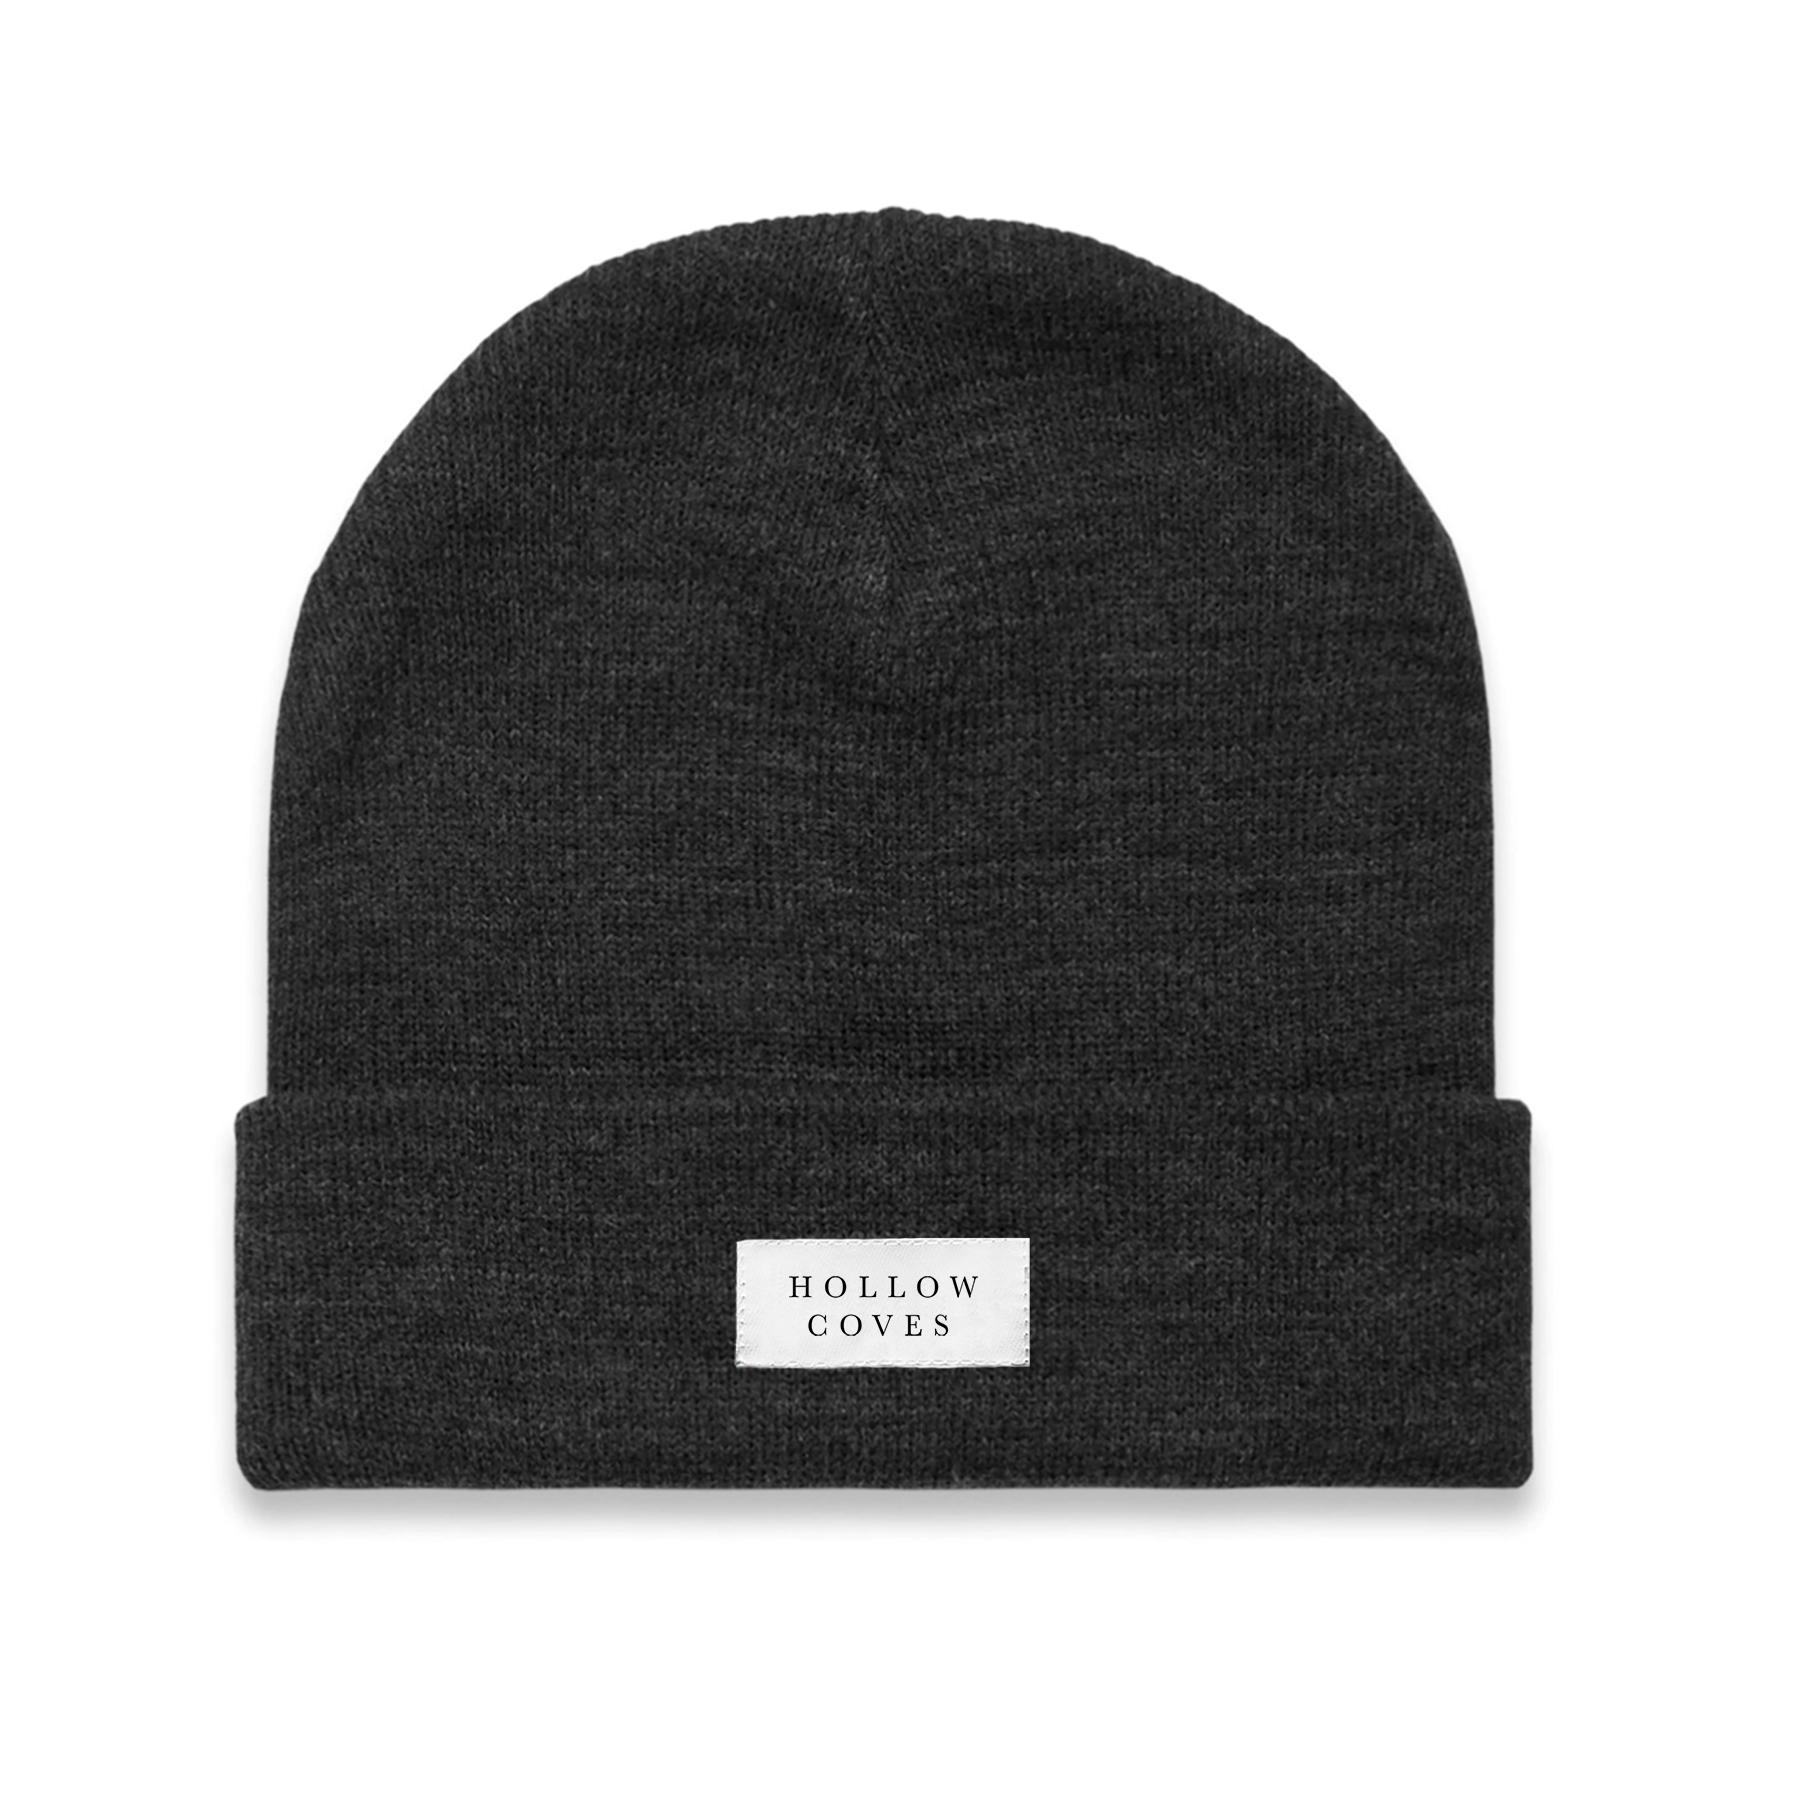 Buy Online Hollow Coves - Dark Grey Beanie